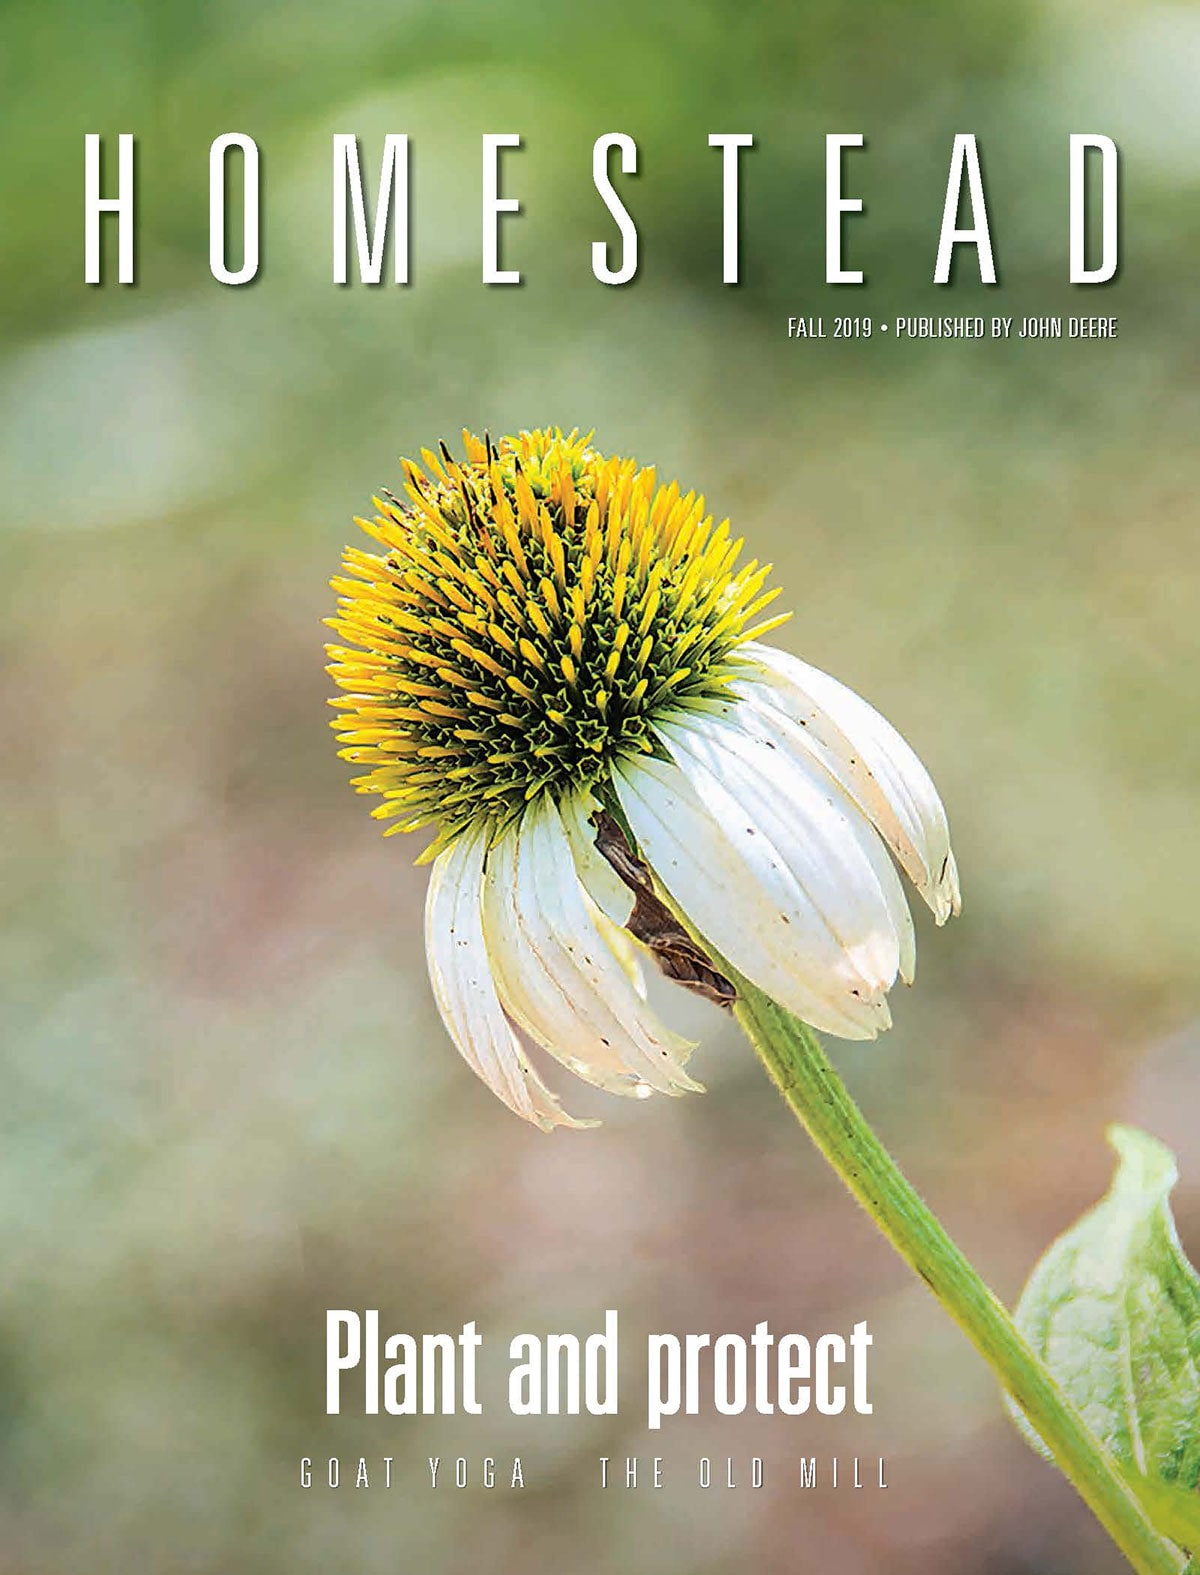 Homestead - Fall 2019 Issue